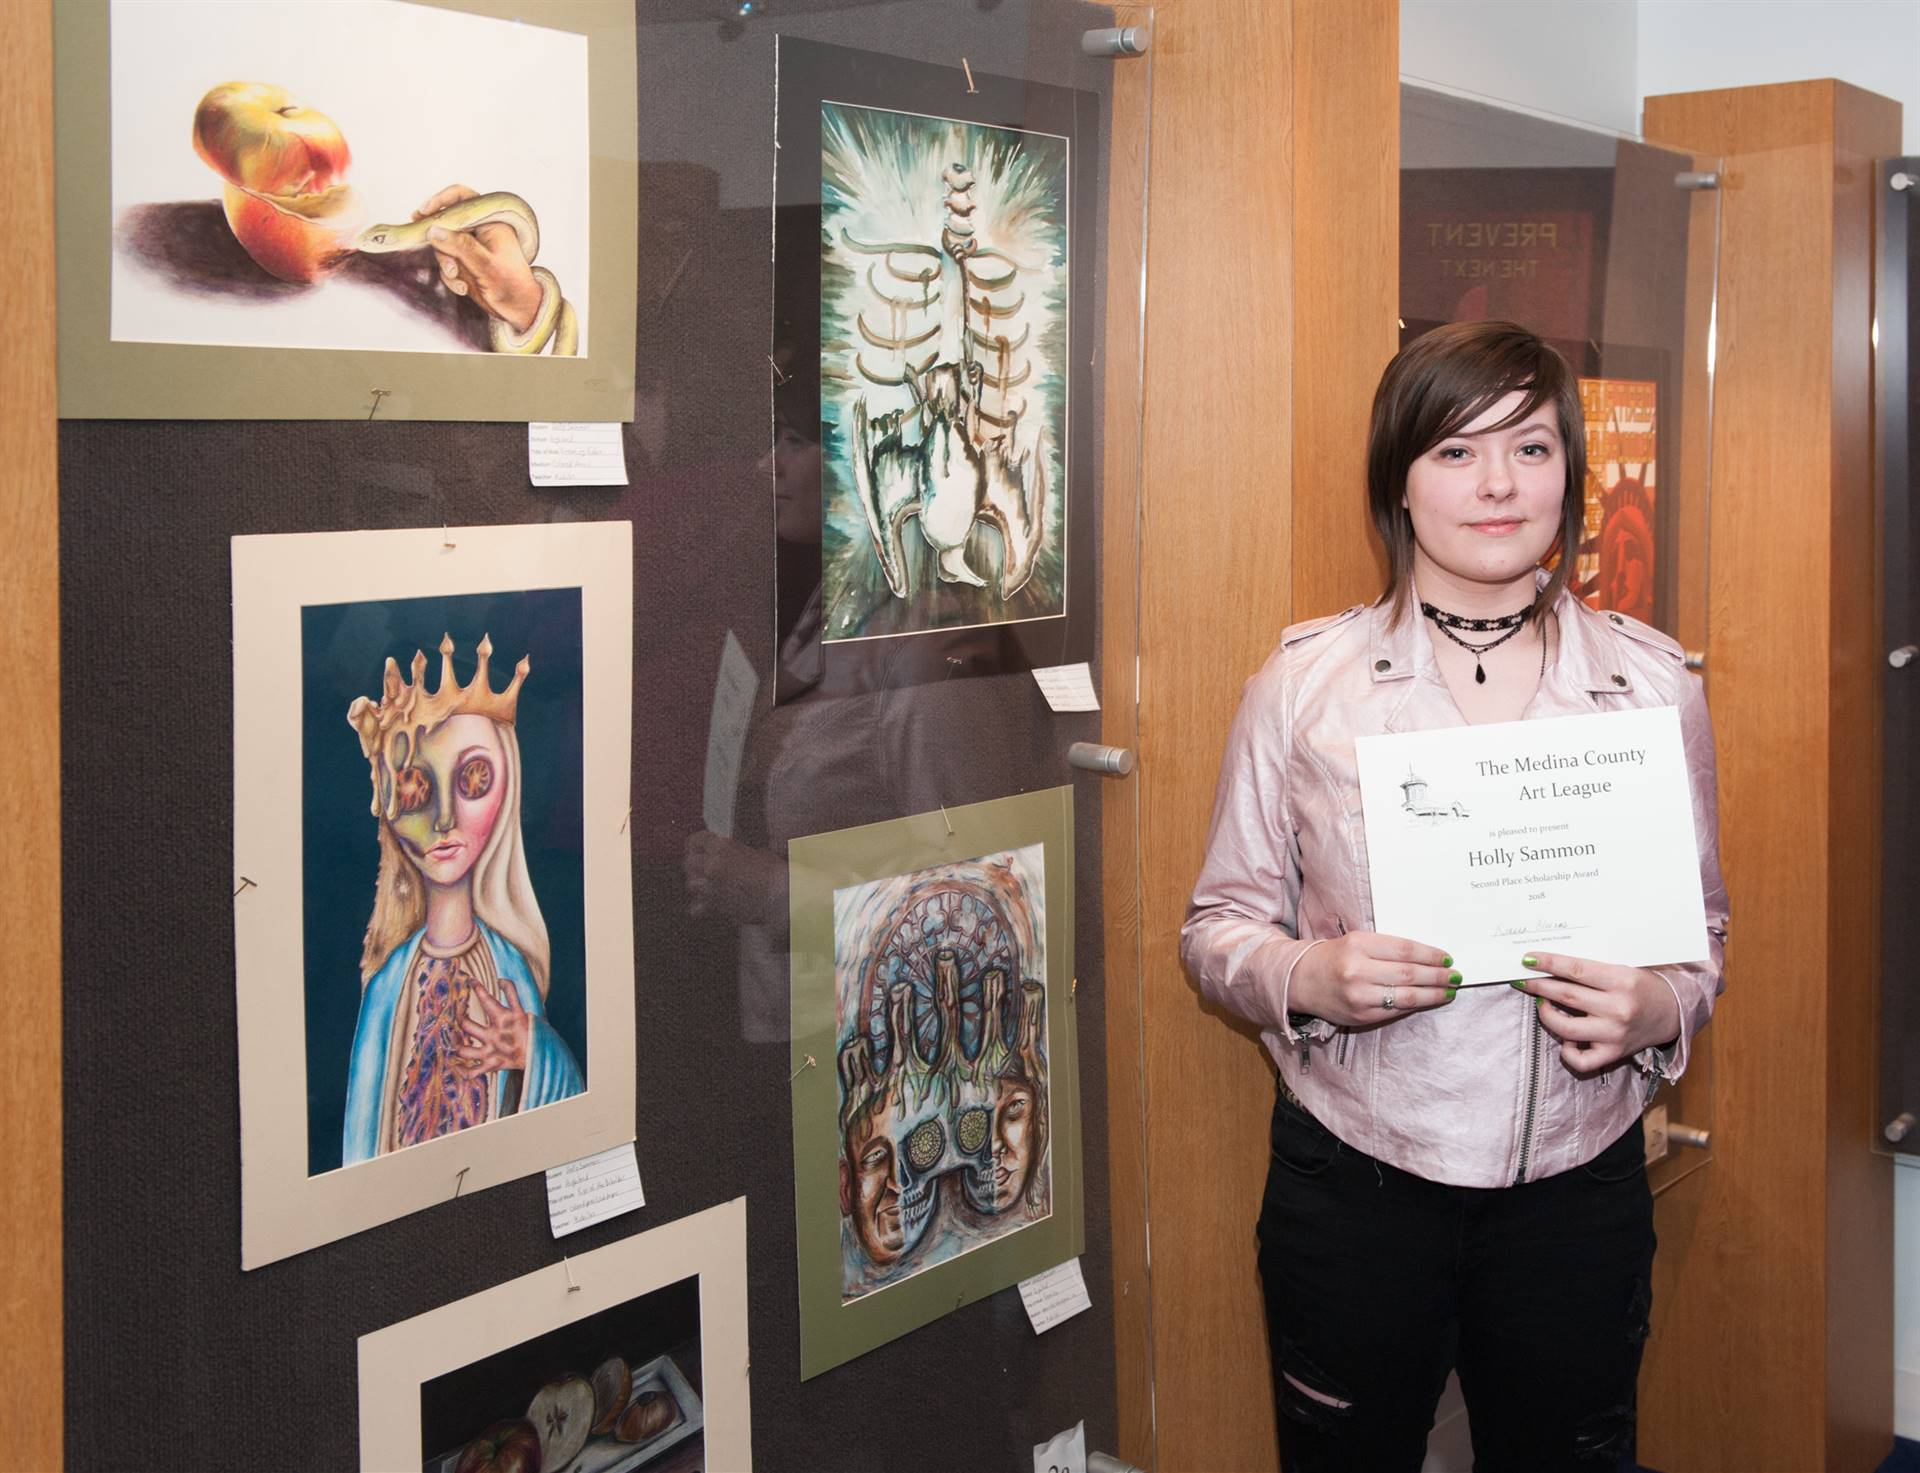 Holly Sammon and her artwork display